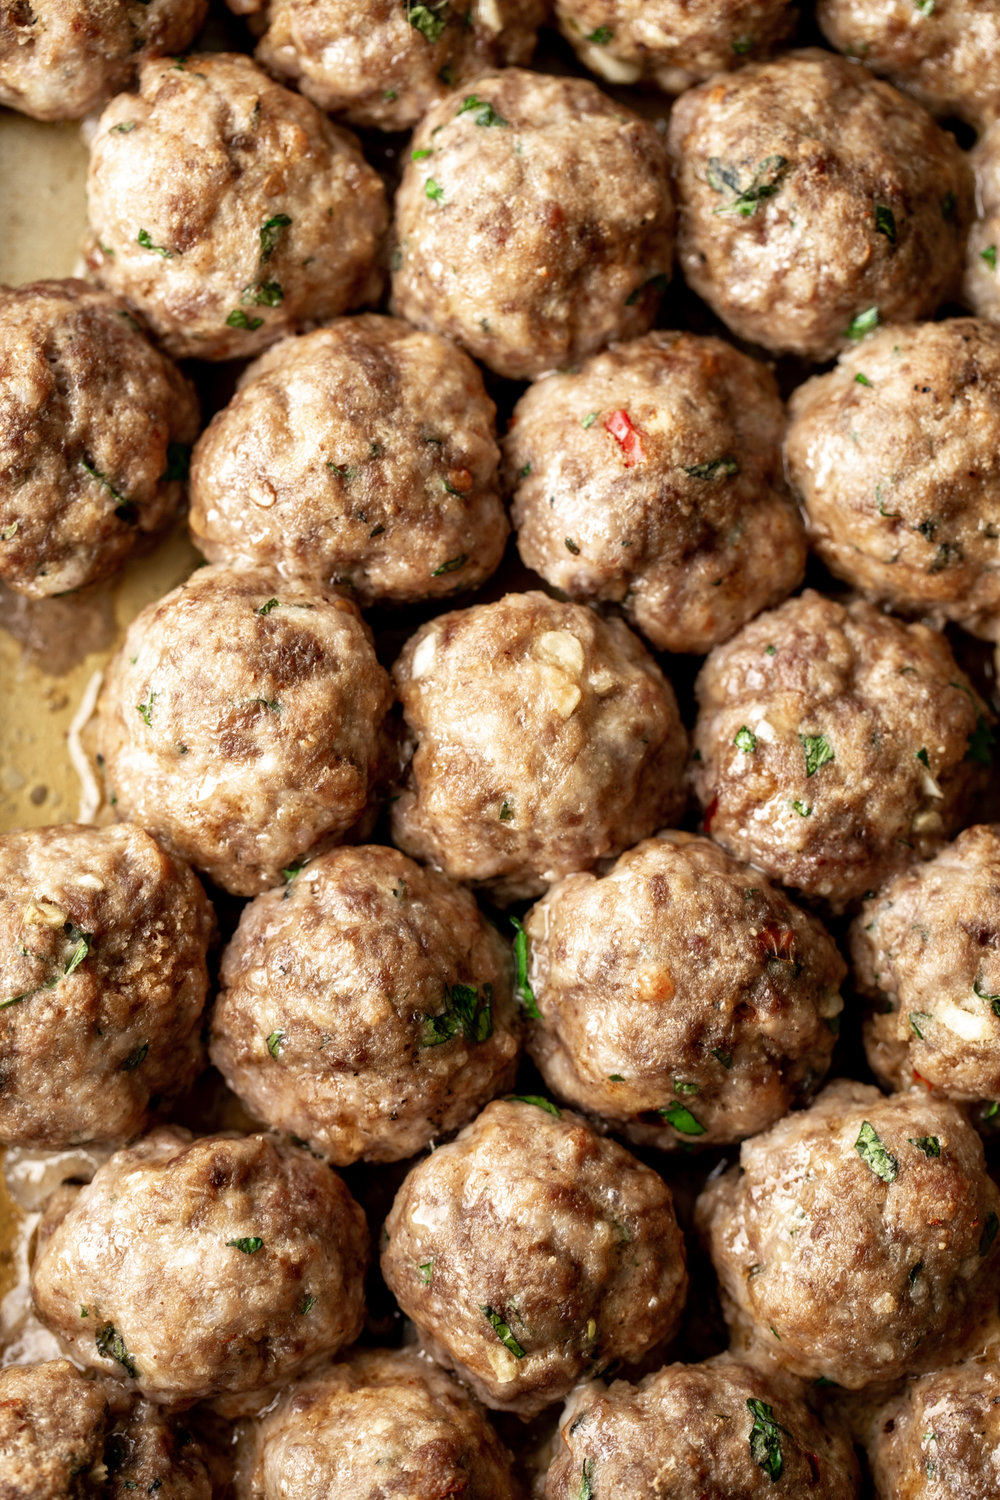 Meatball Subswith Spicy Beef and Pork Meatballs closeup